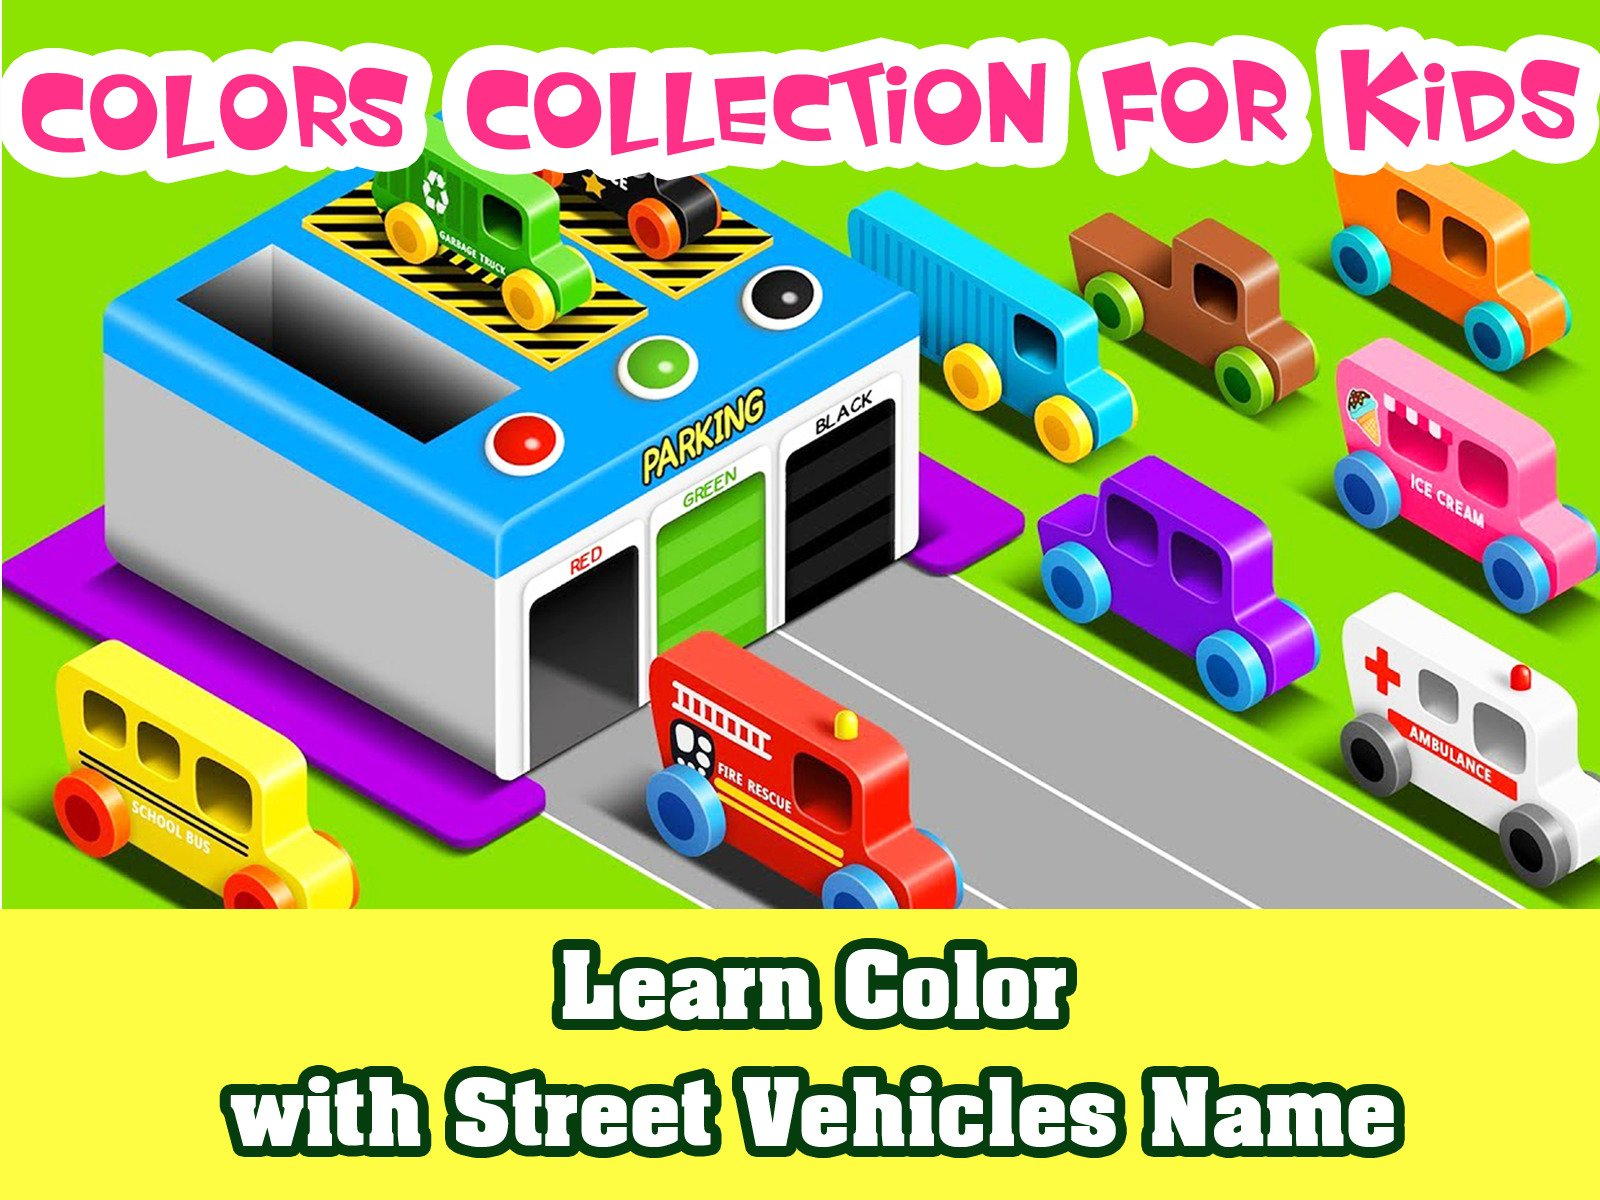 Learn Color with Street Vehicles Name